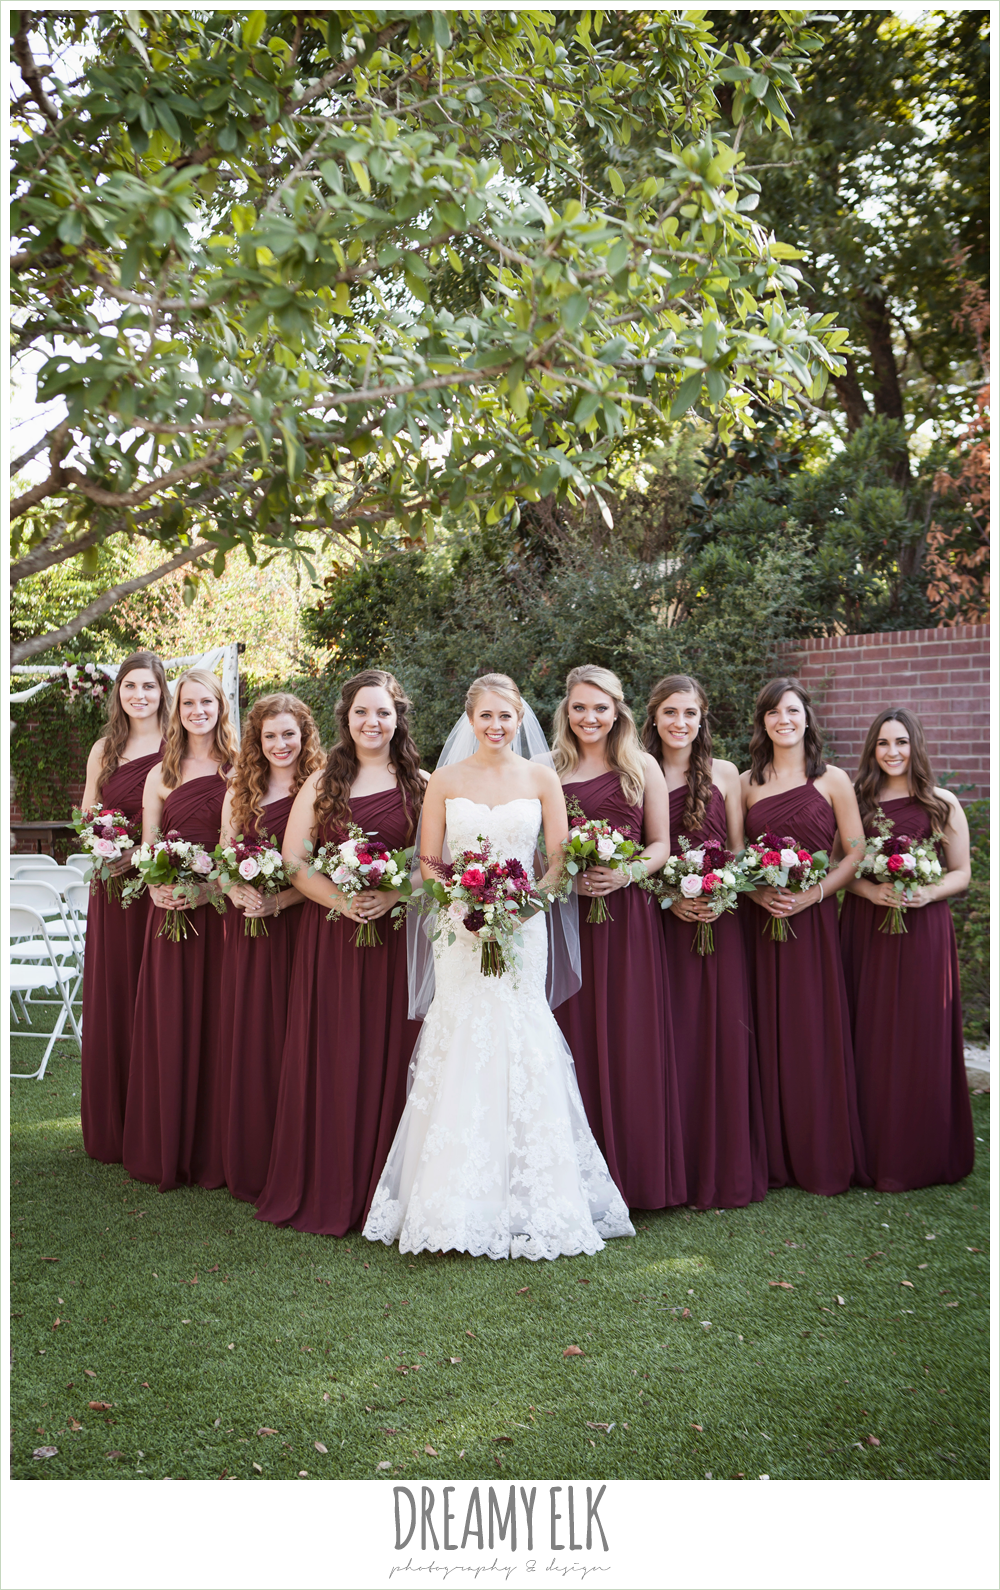 burgundy wedding dresses flourish floral design burgundy and light pink wedding bouquets bride and bridesmaids mermaid